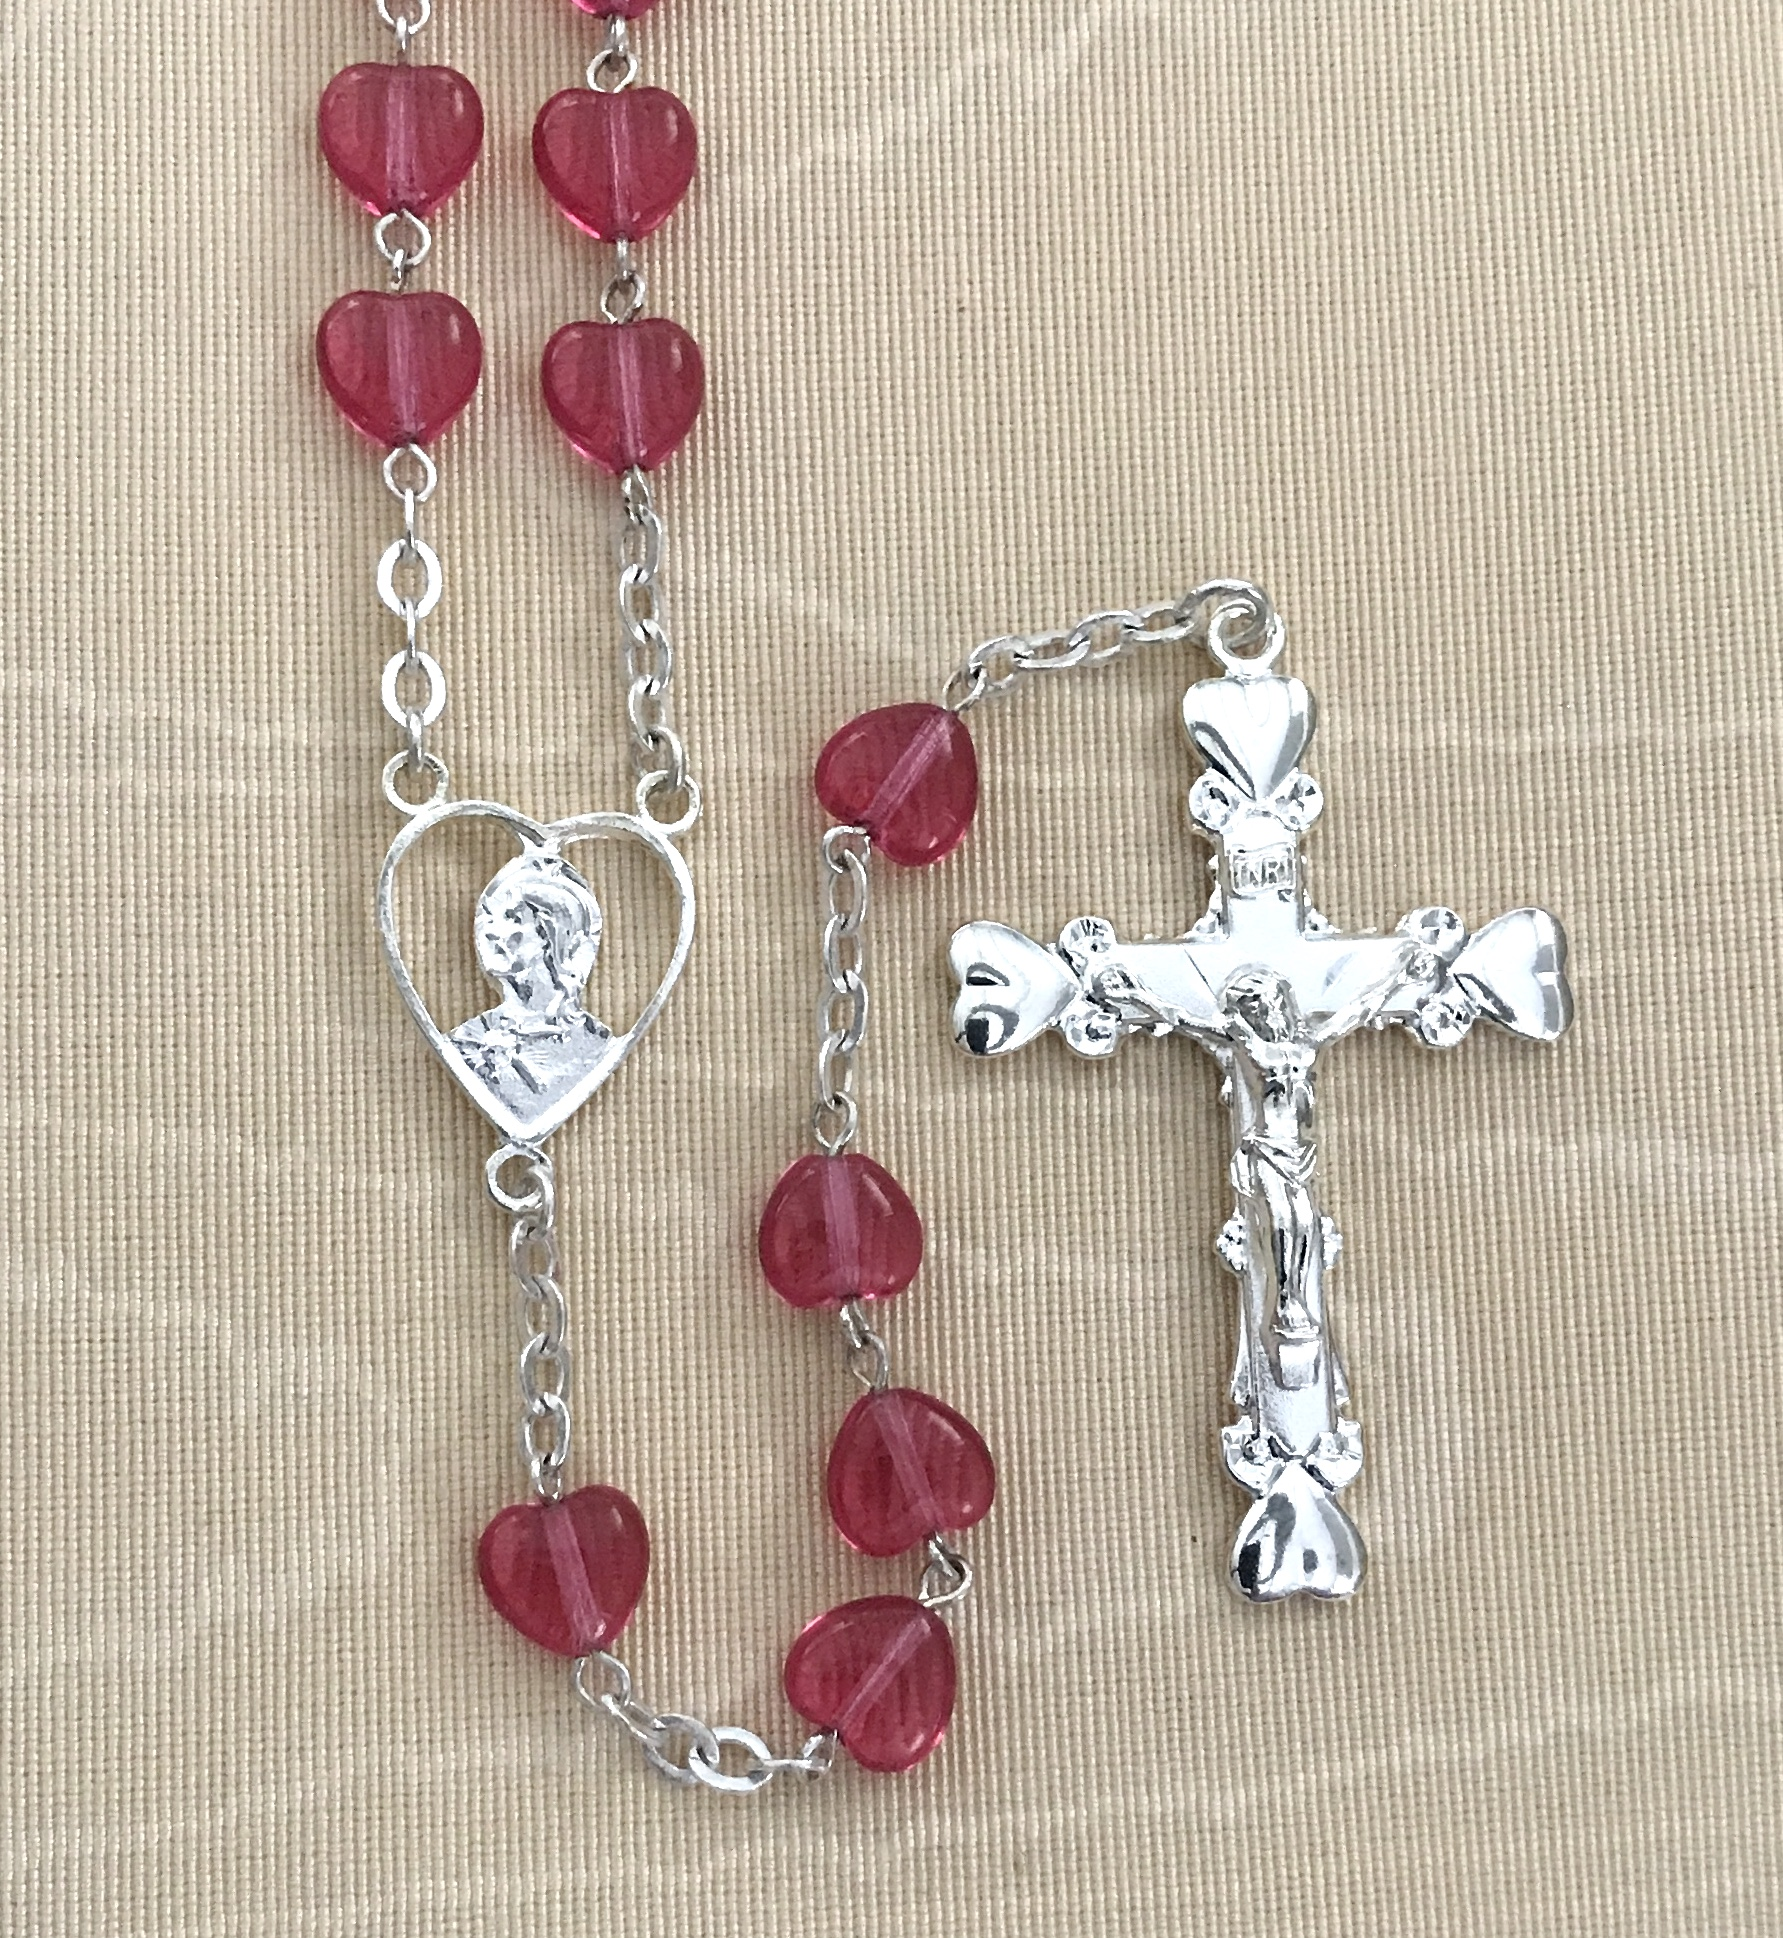 7mm ROSE HEART SHAPED ROSARY WITH STERLING SILVER PLATED CRUCIFIX AND CENTER GIFT BOXED